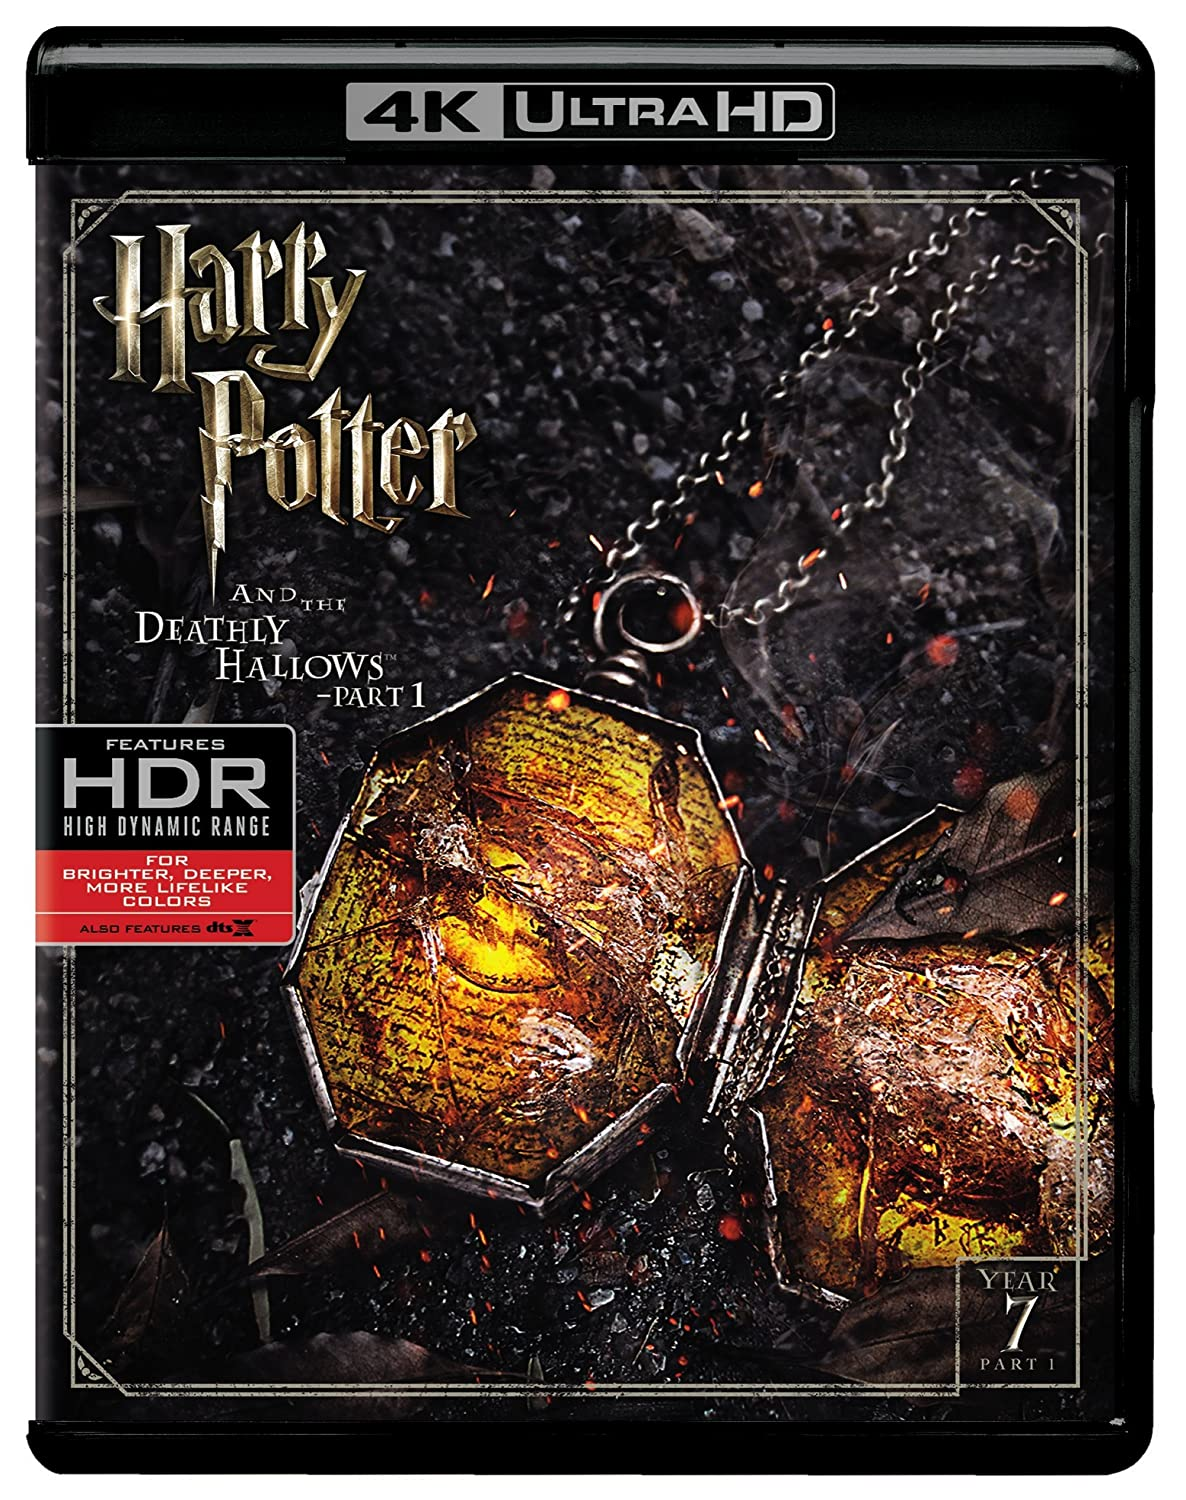 Harry Potter and the Deathly Hallows Pt.1 Ultra HD